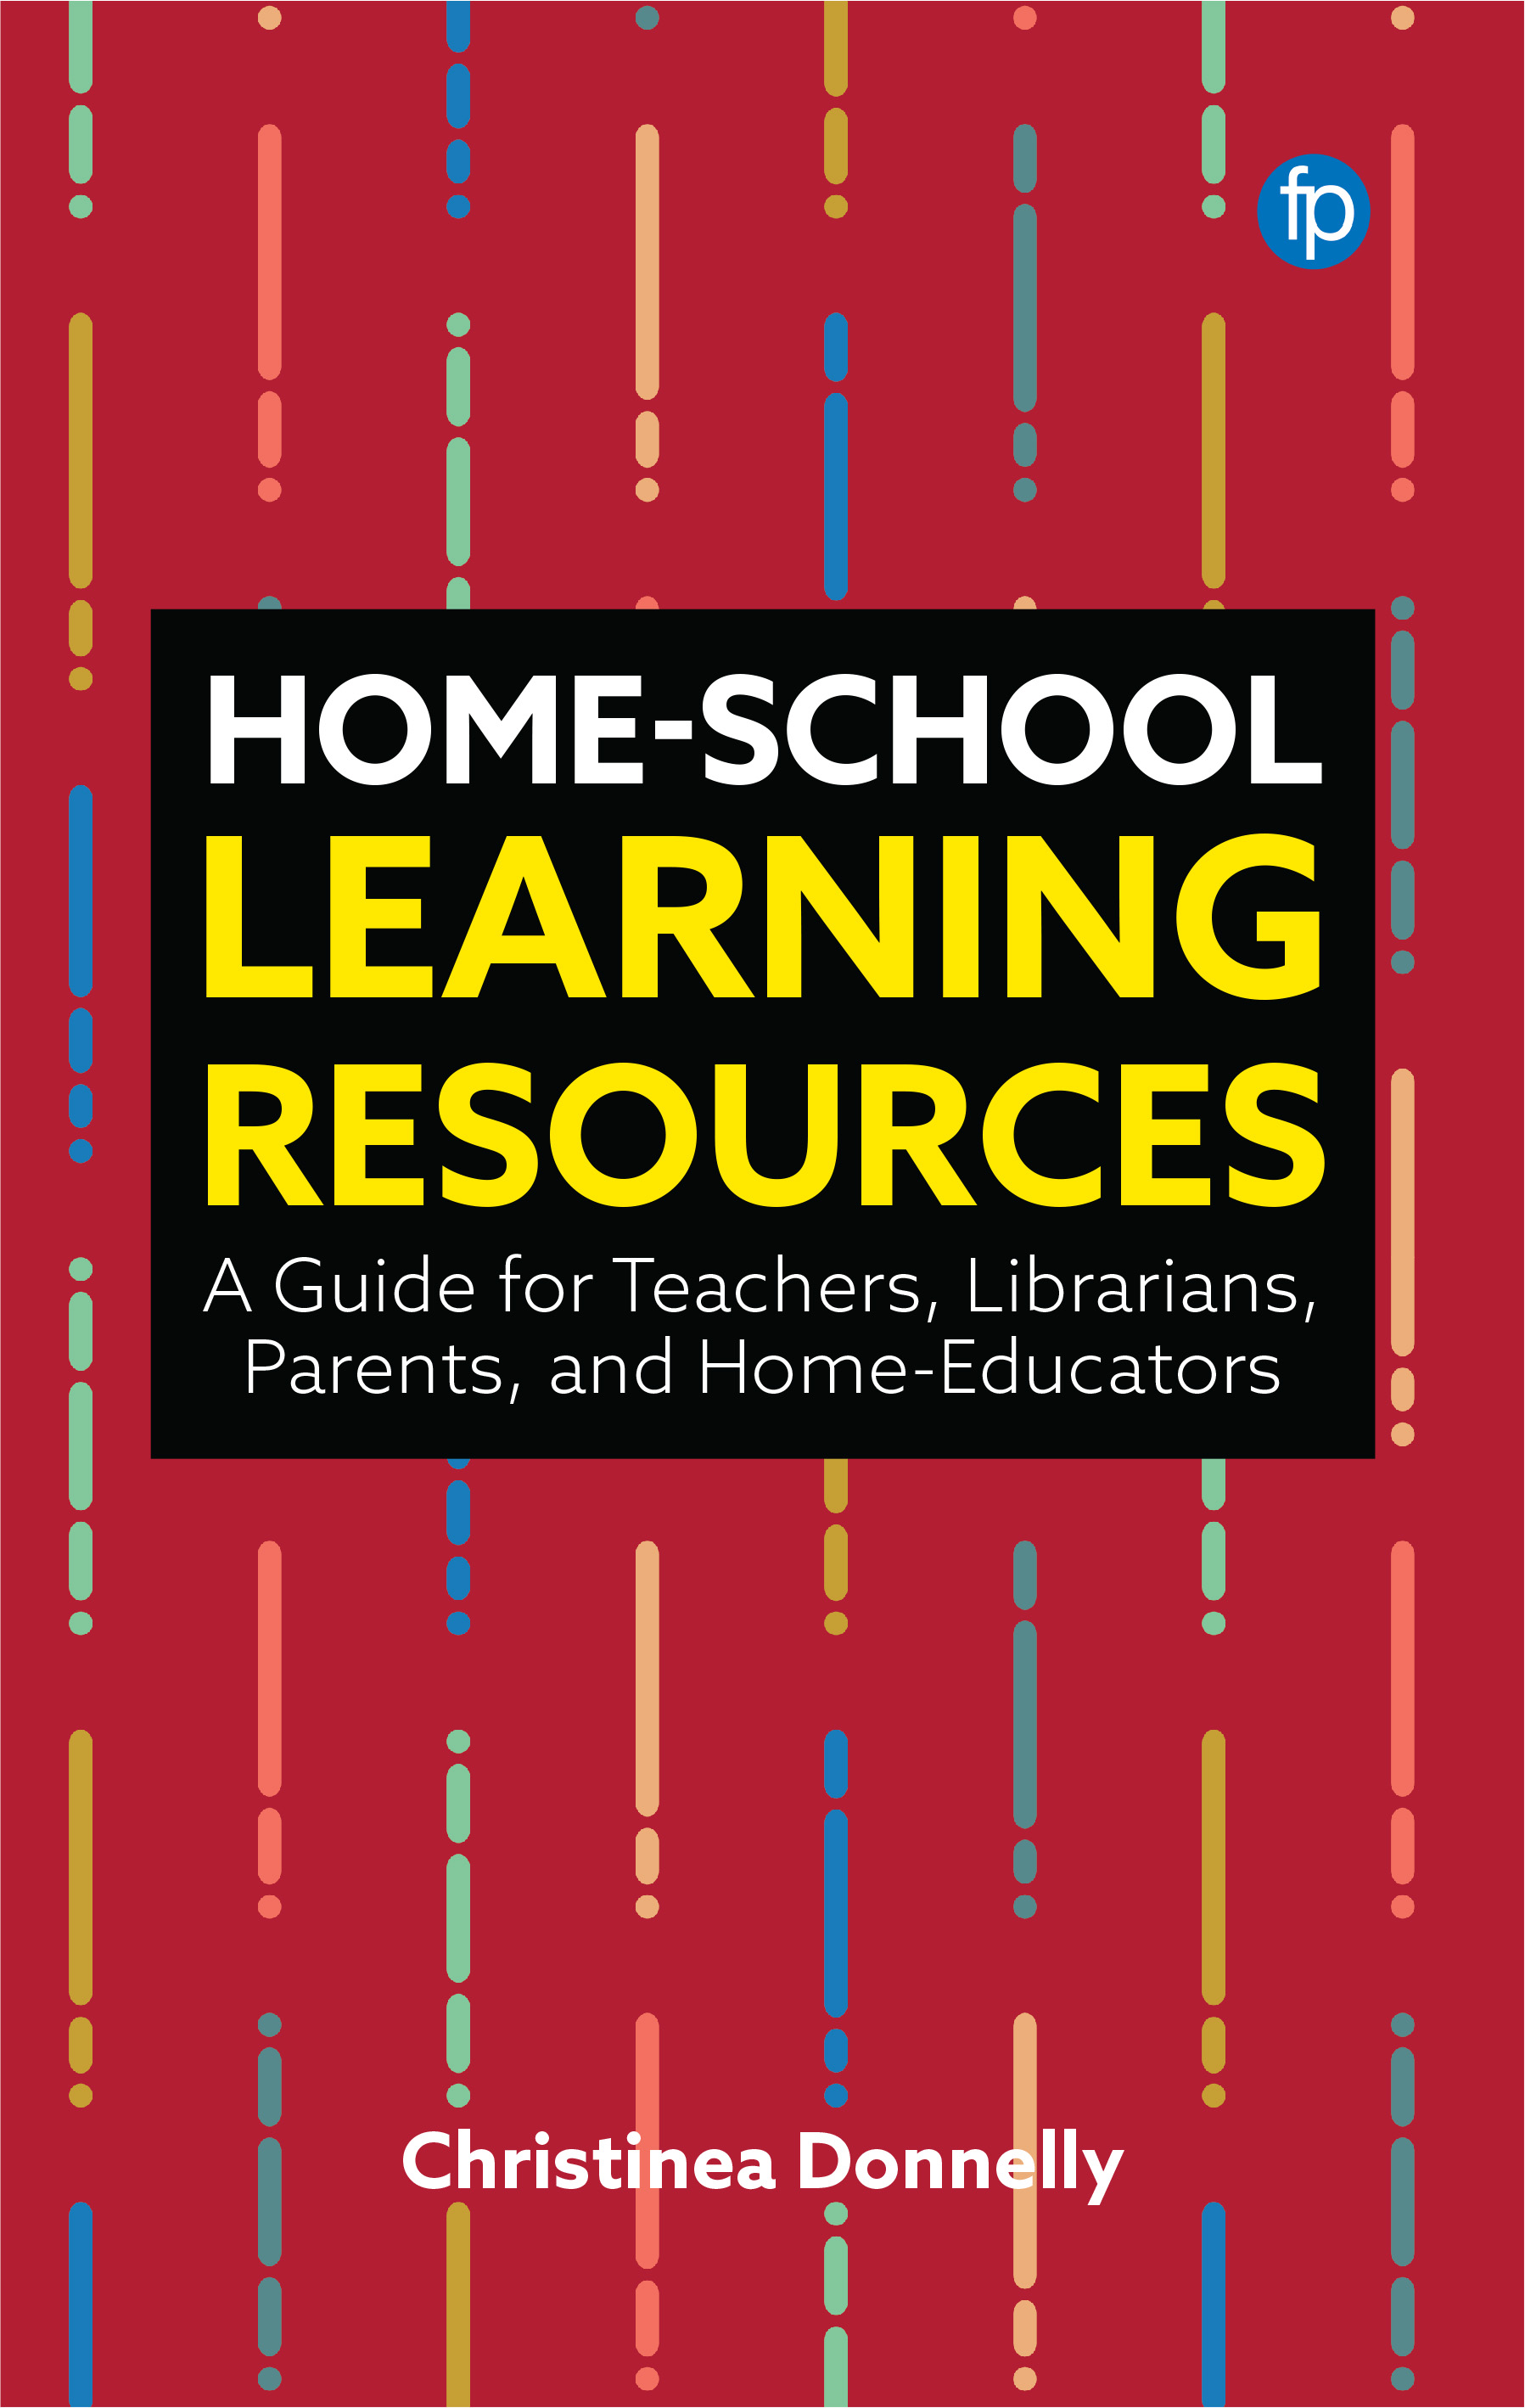 Image for Home-School Learning Resources: A Guide for Teachers, Librarians, Parents, and Home-Educators